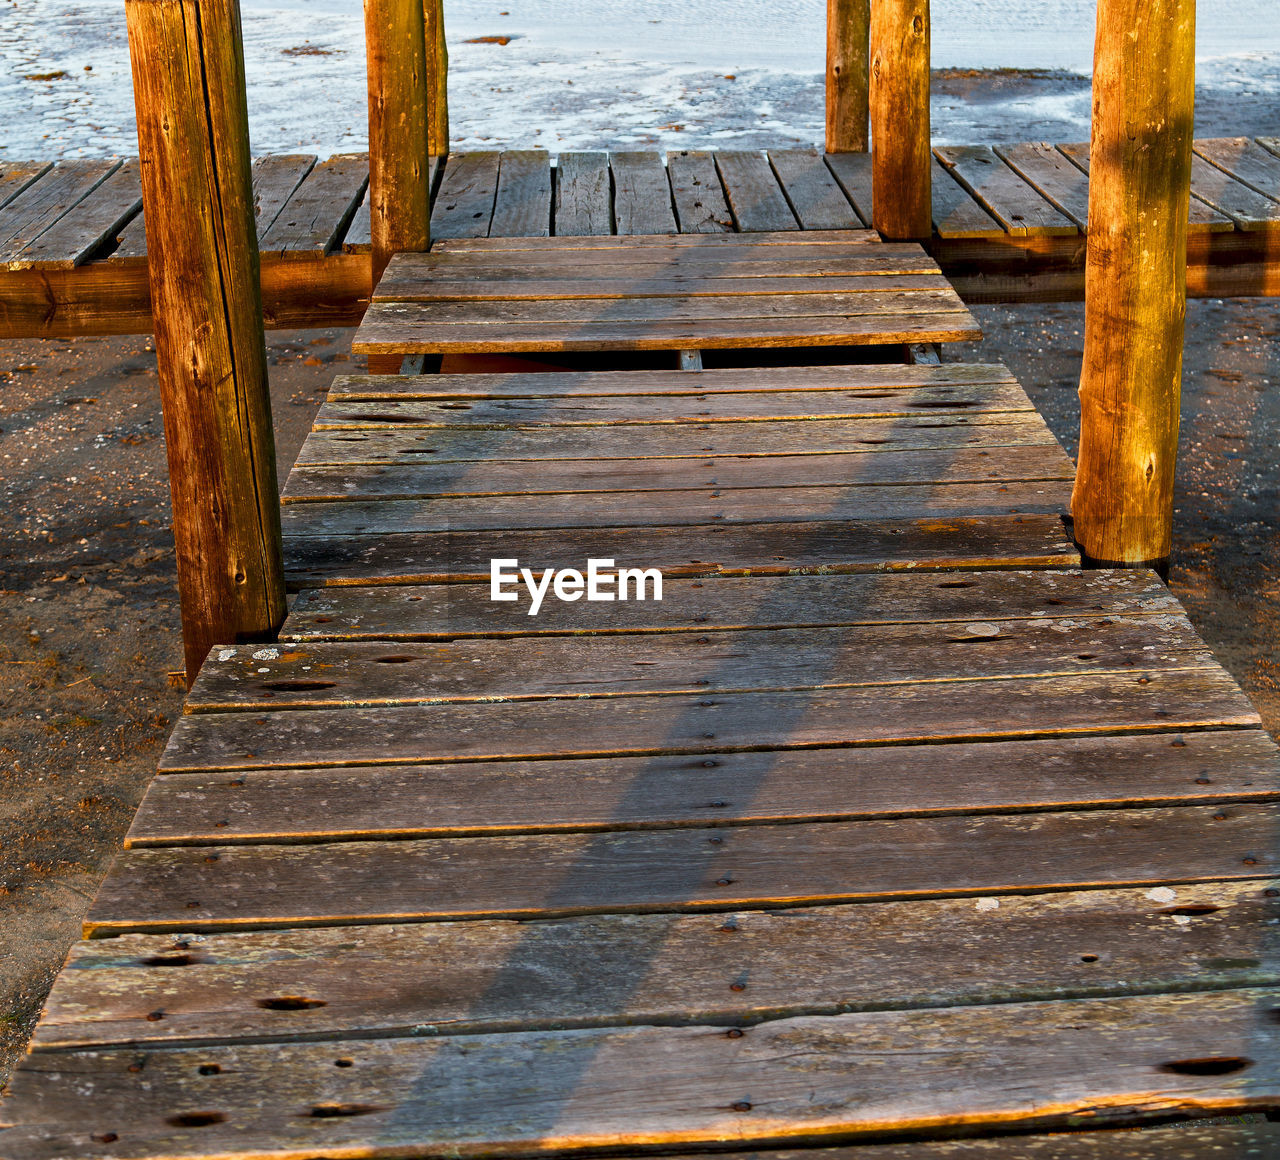 wood - material, water, no people, pier, day, architecture, nature, the way forward, outdoors, built structure, jetty, boardwalk, direction, pattern, wood paneling, sea, tranquility, high angle view, wooden post